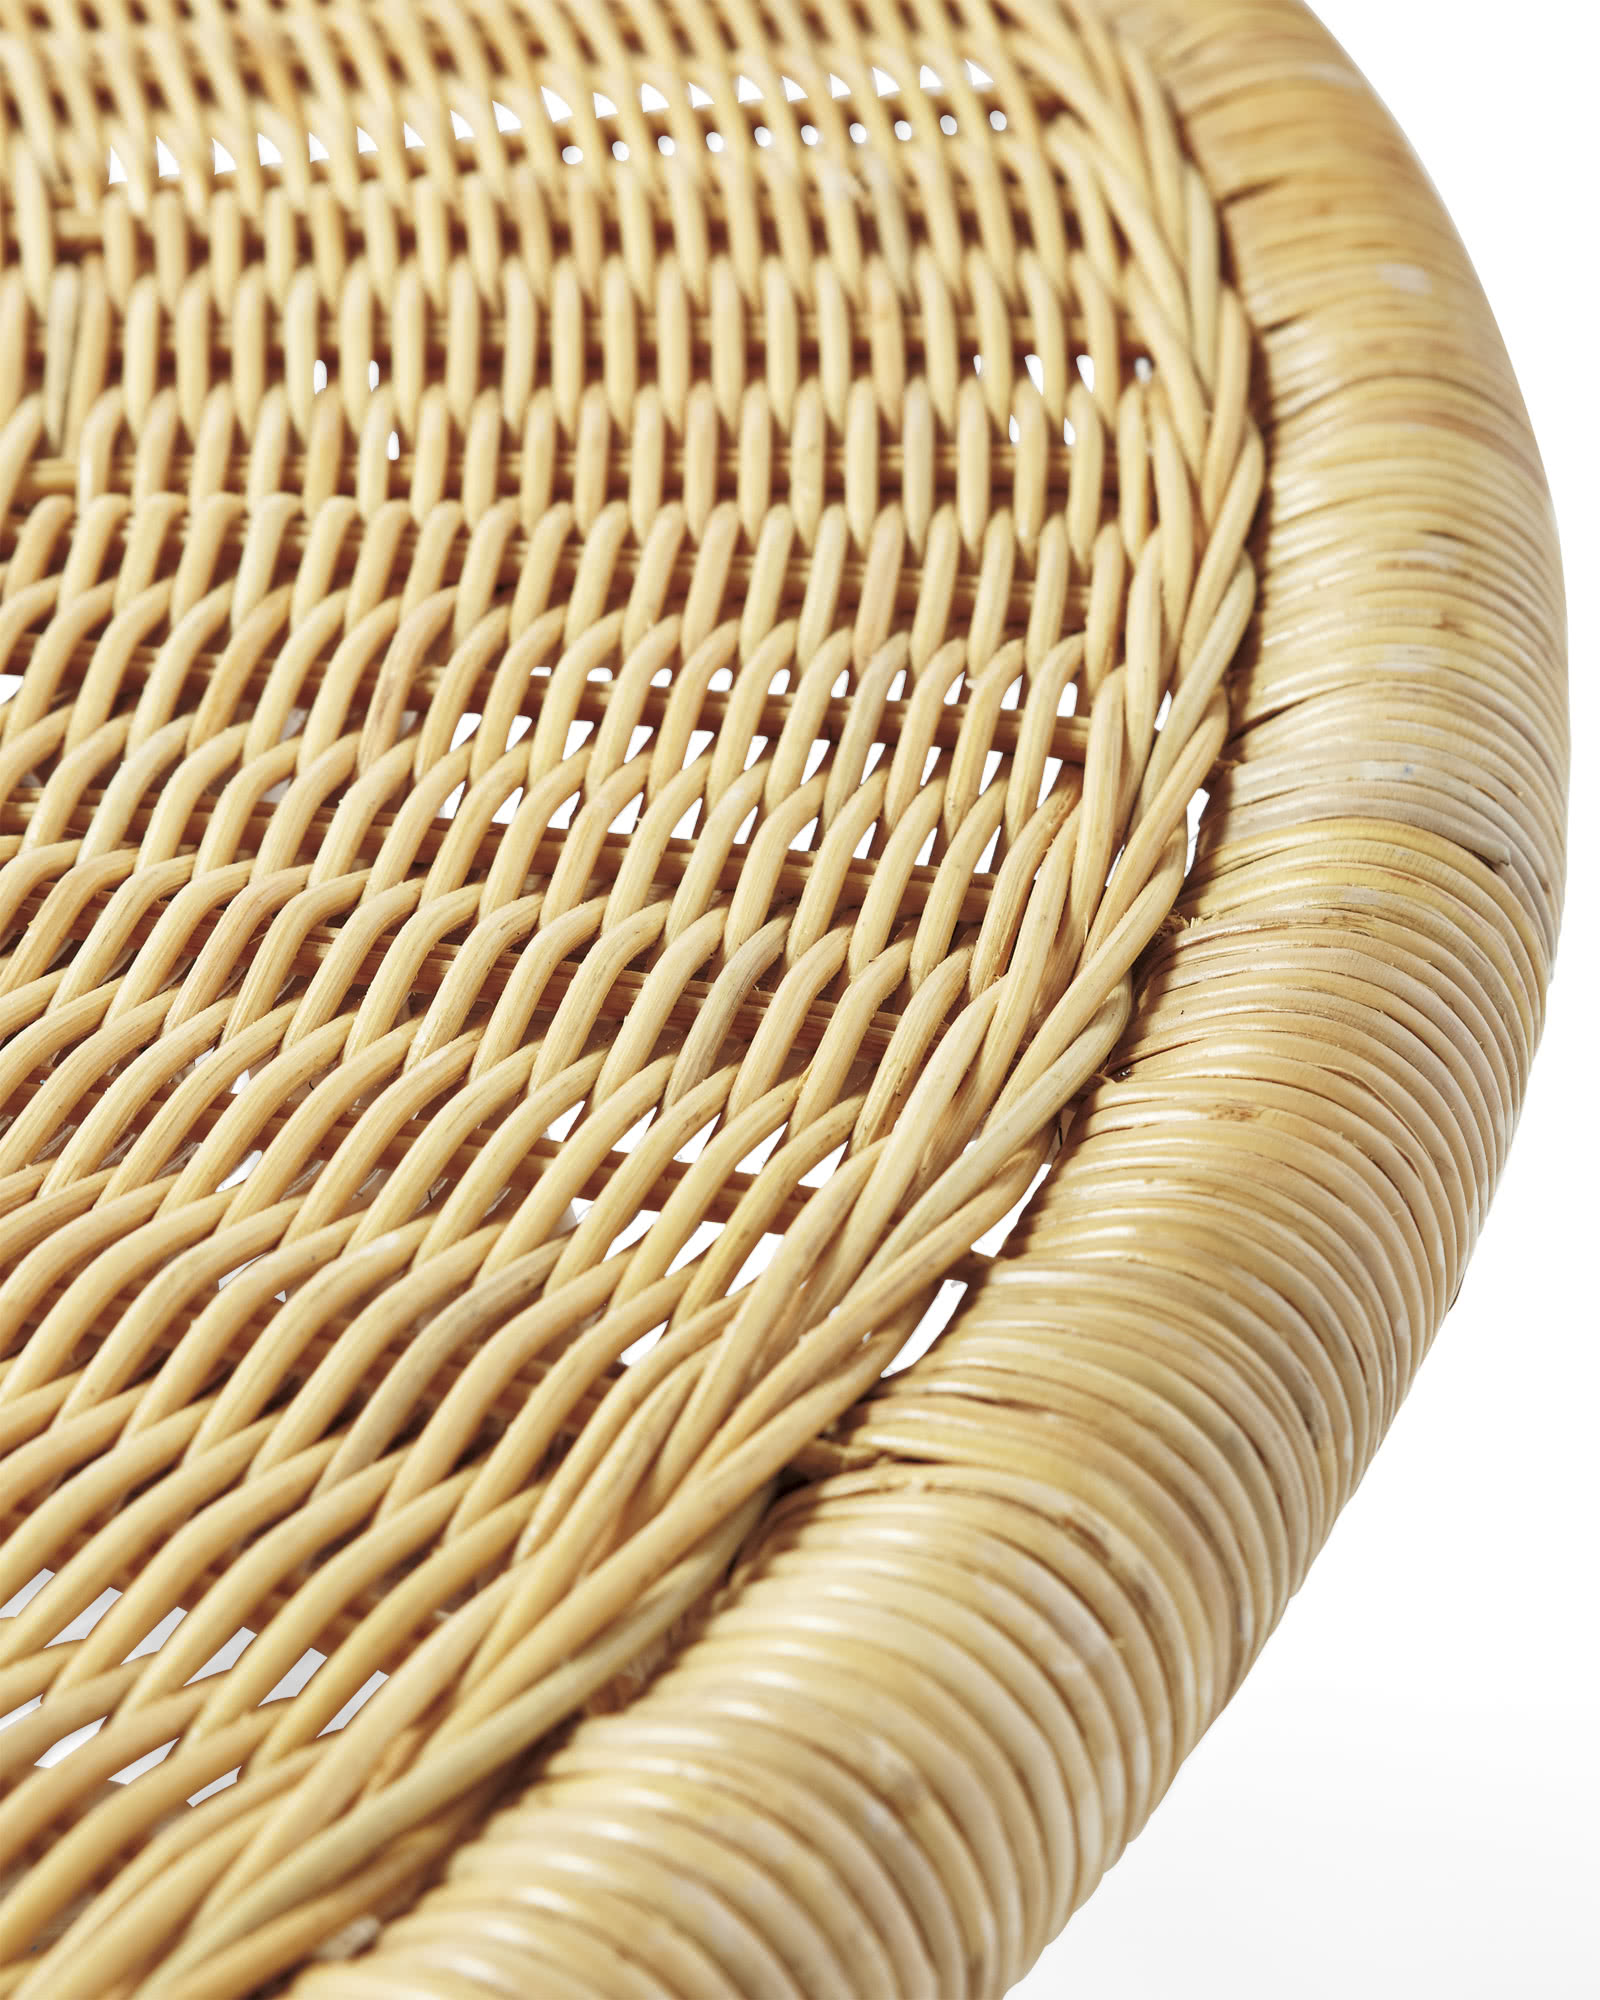 Anguilla Rattan Coffee Table Serena & Lily